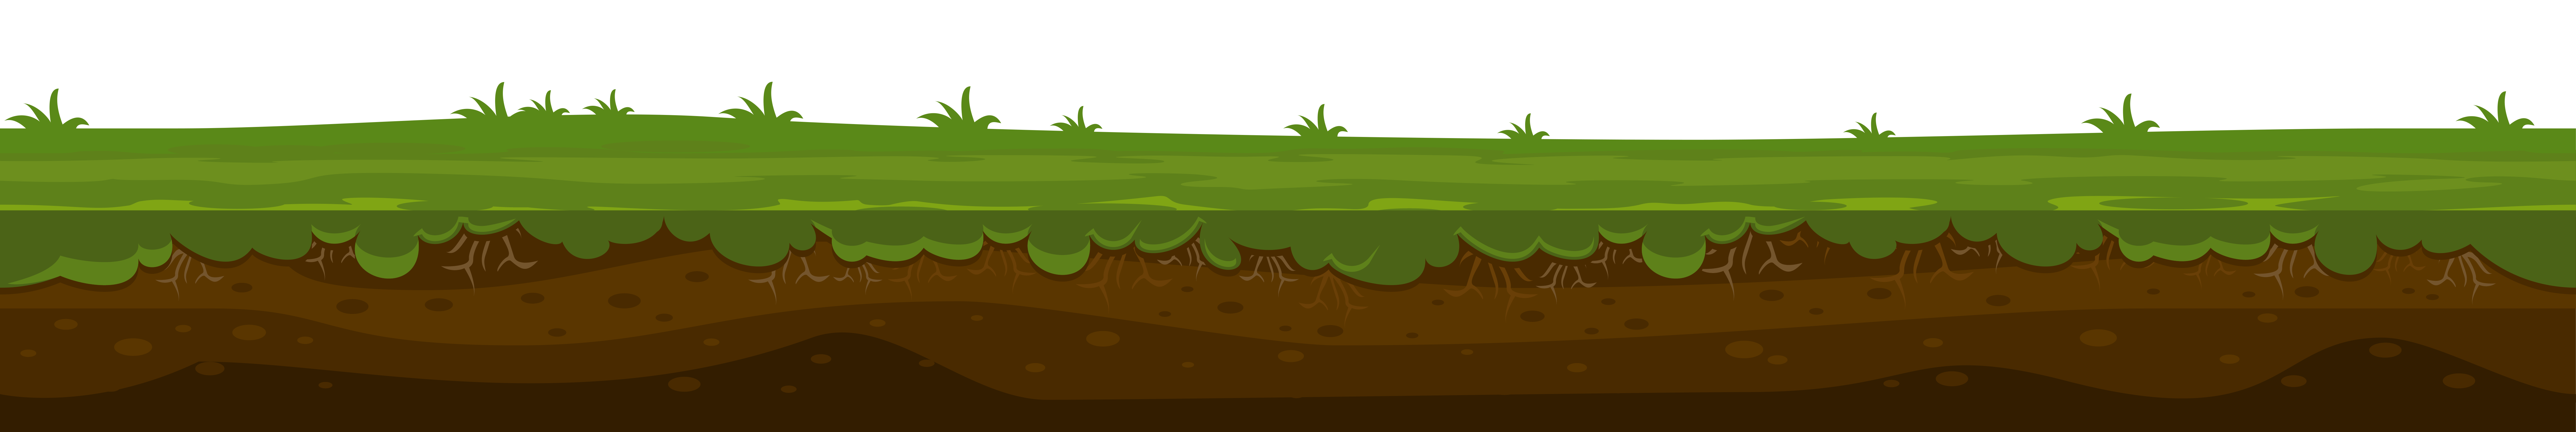 Ground clipart Collection png Art Ground clipart